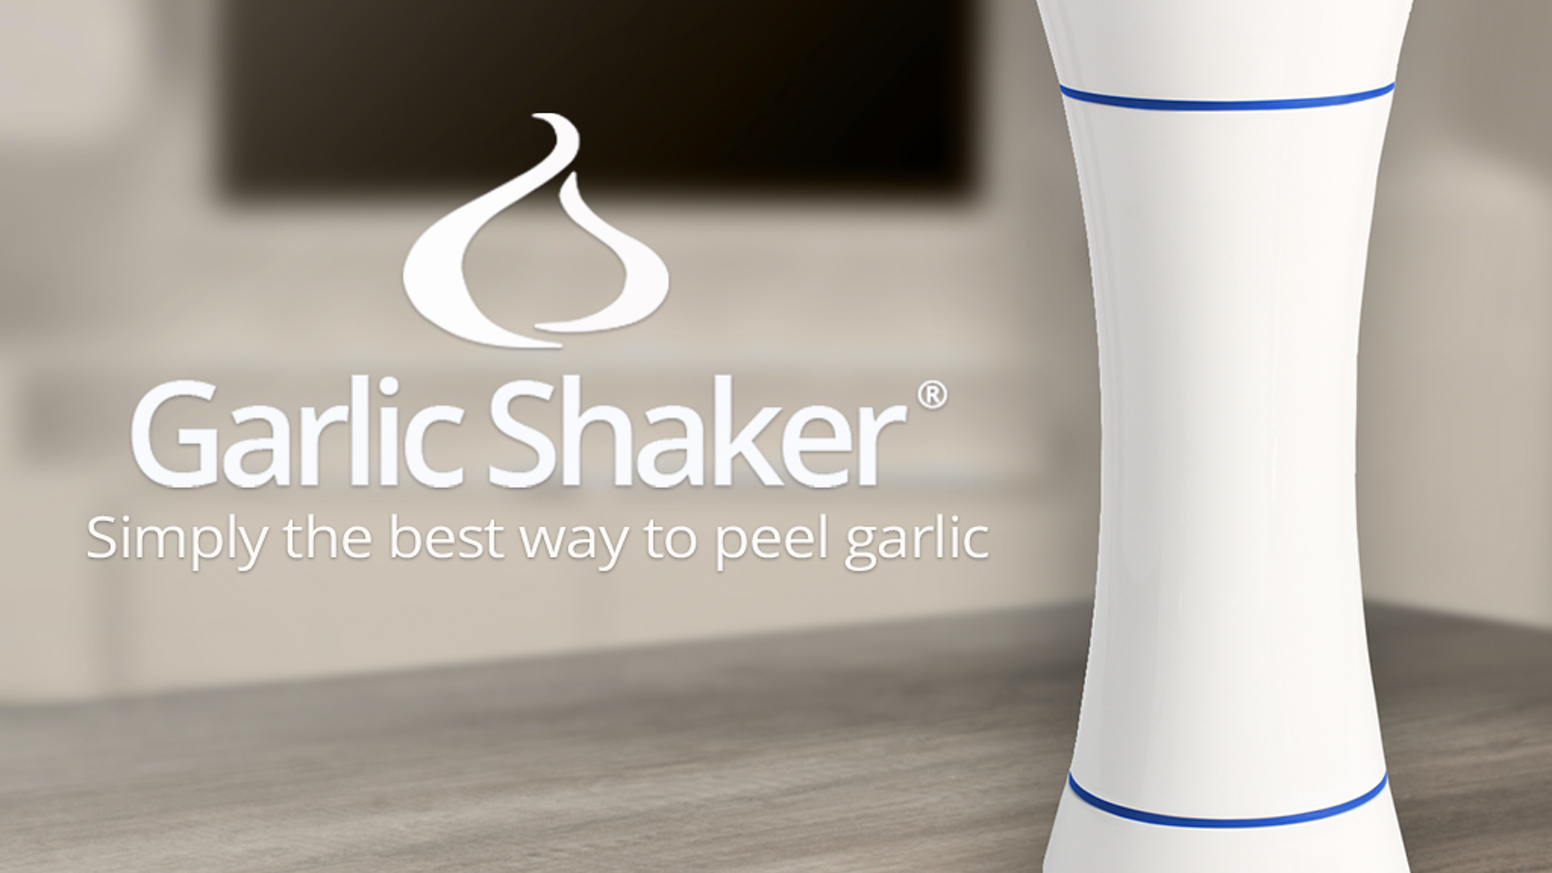 Garlic Shaker® makes peeling garlic simple and fun! Just shake it up!